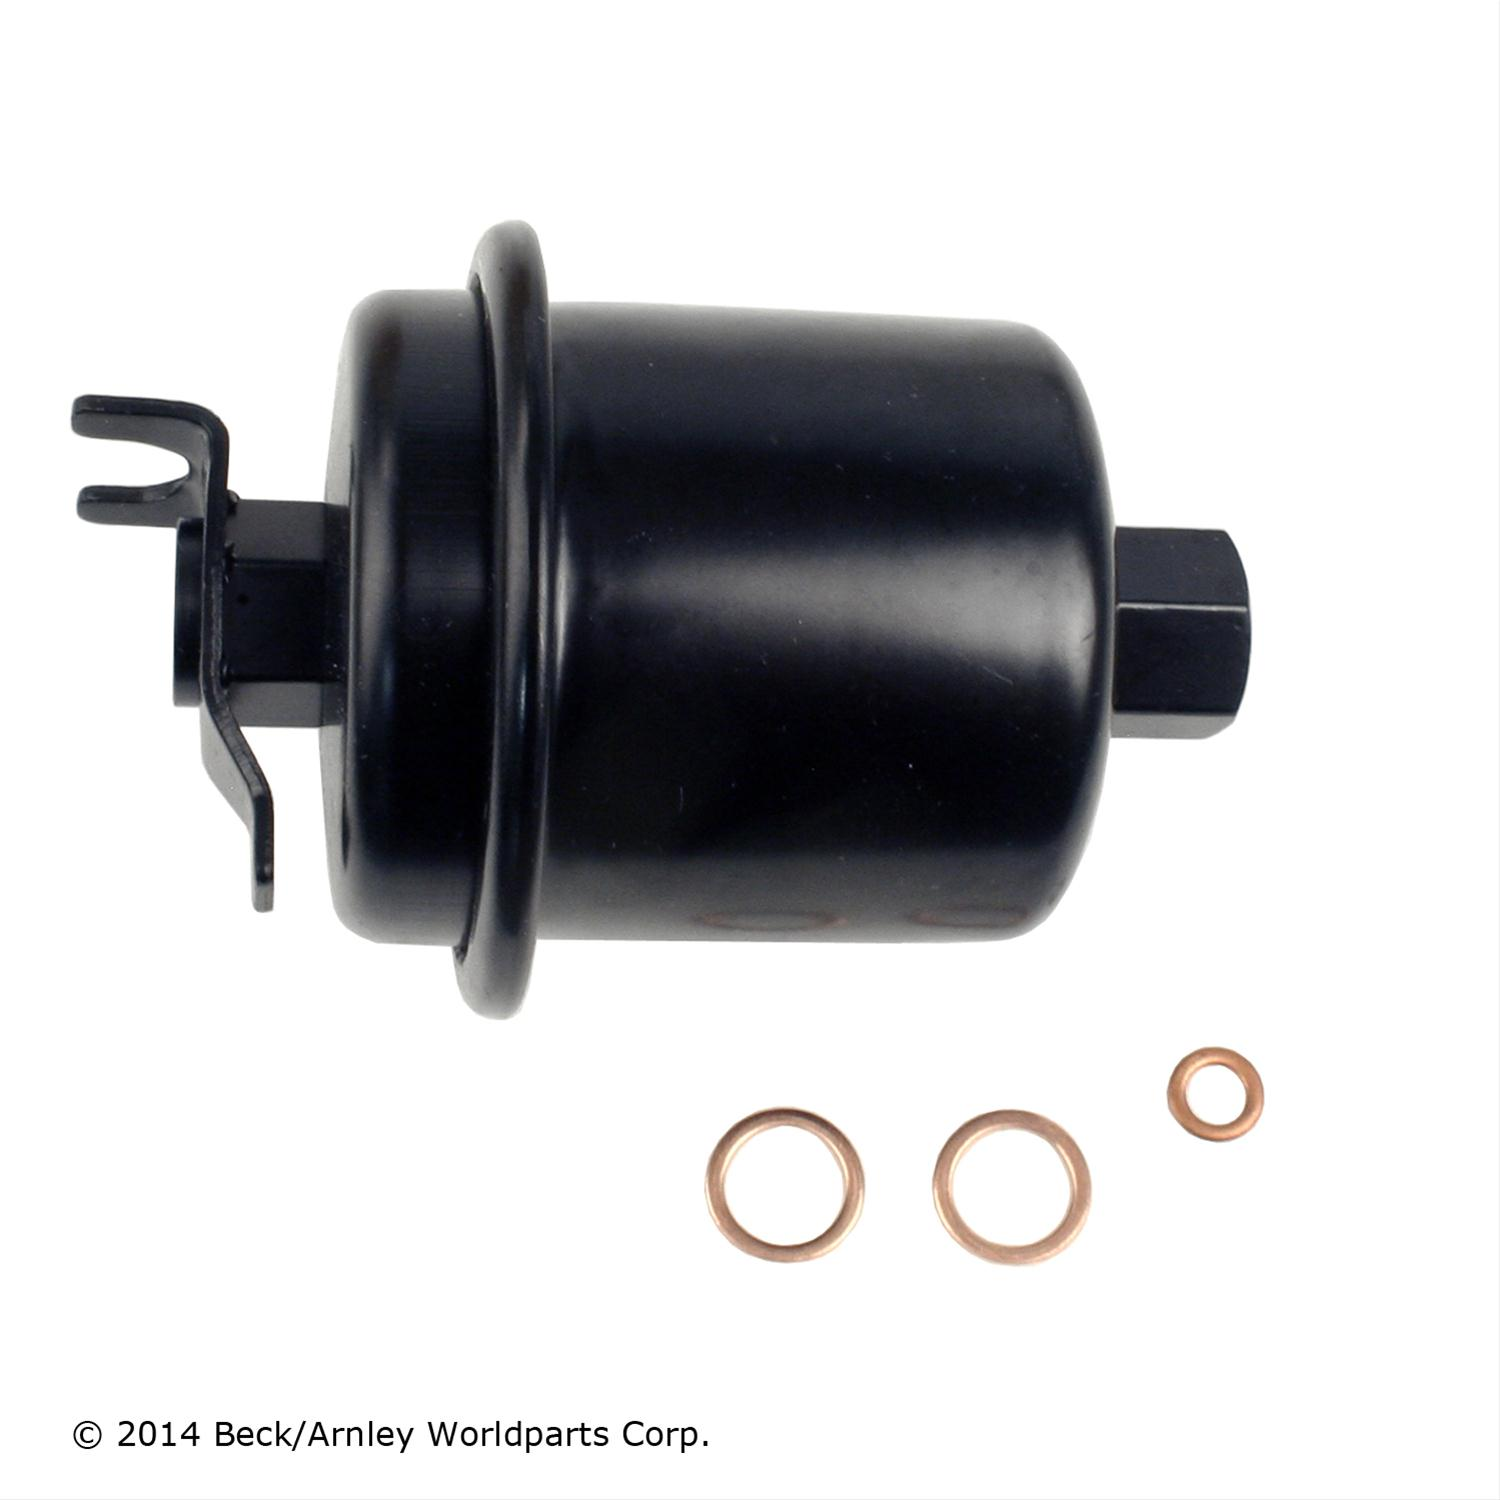 Beck/Arnley Fuel Filter OEM Replacement for use on Honda« Acura« Each